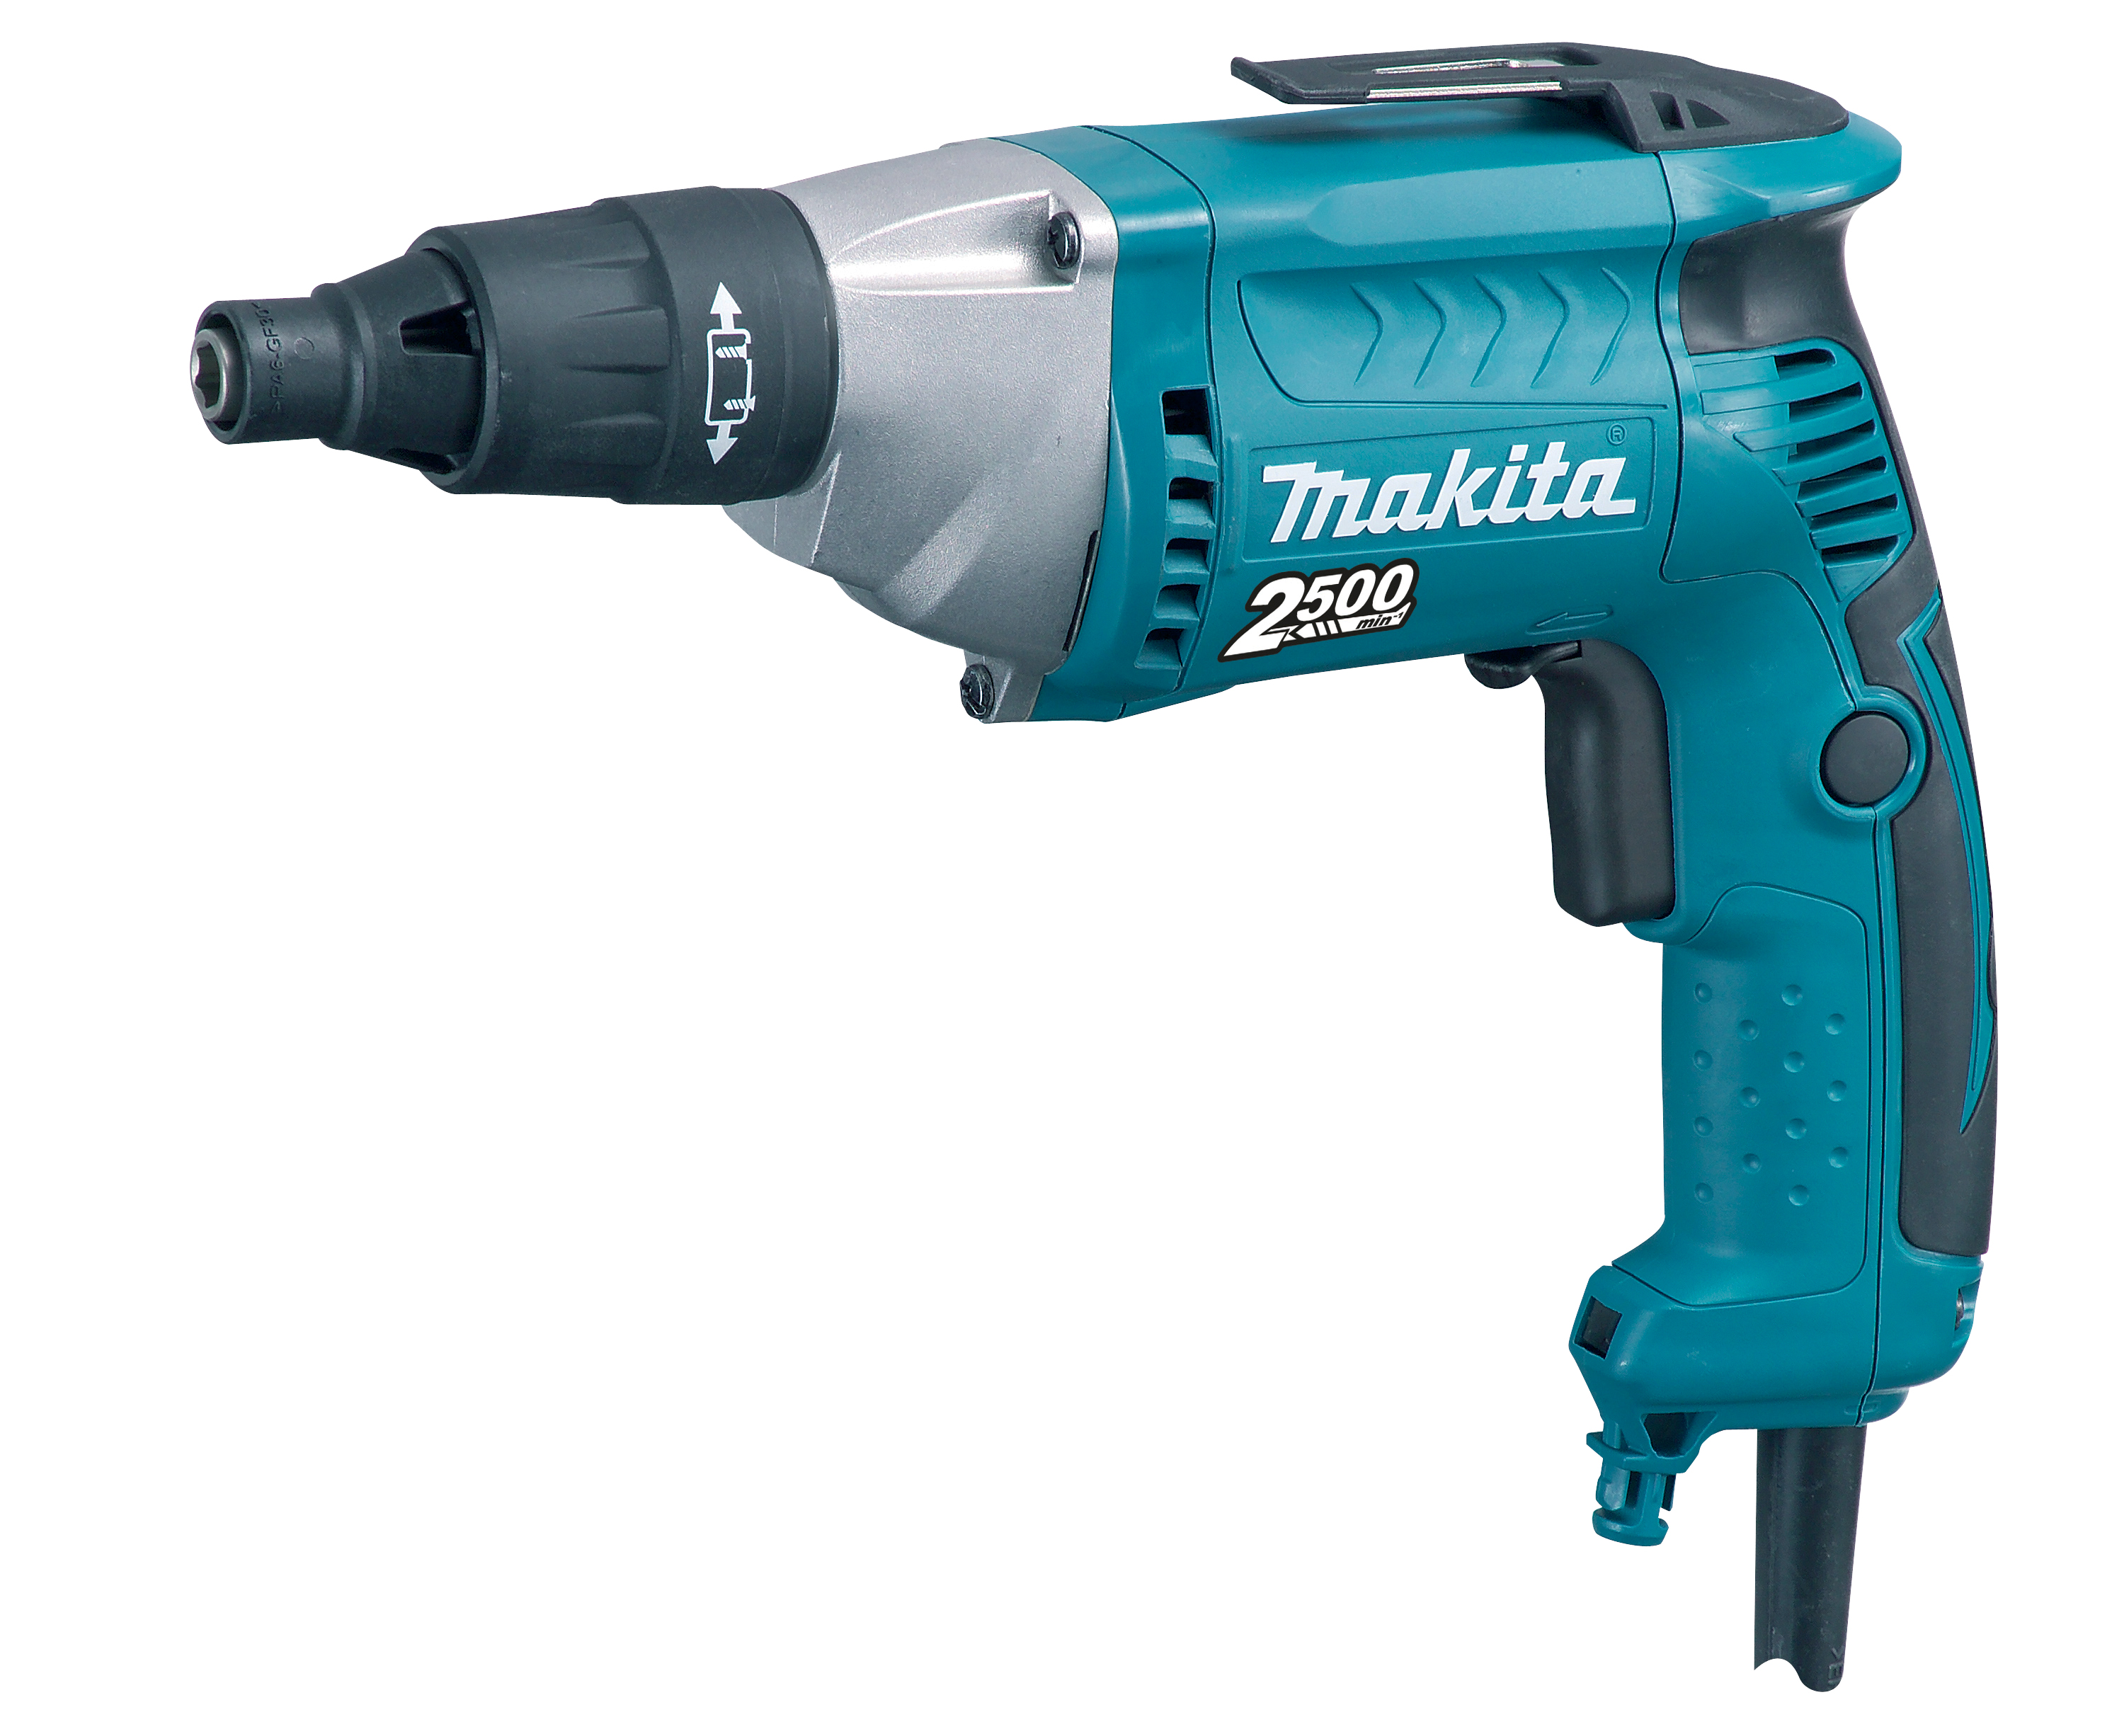 makita-fs2500-screwdriver